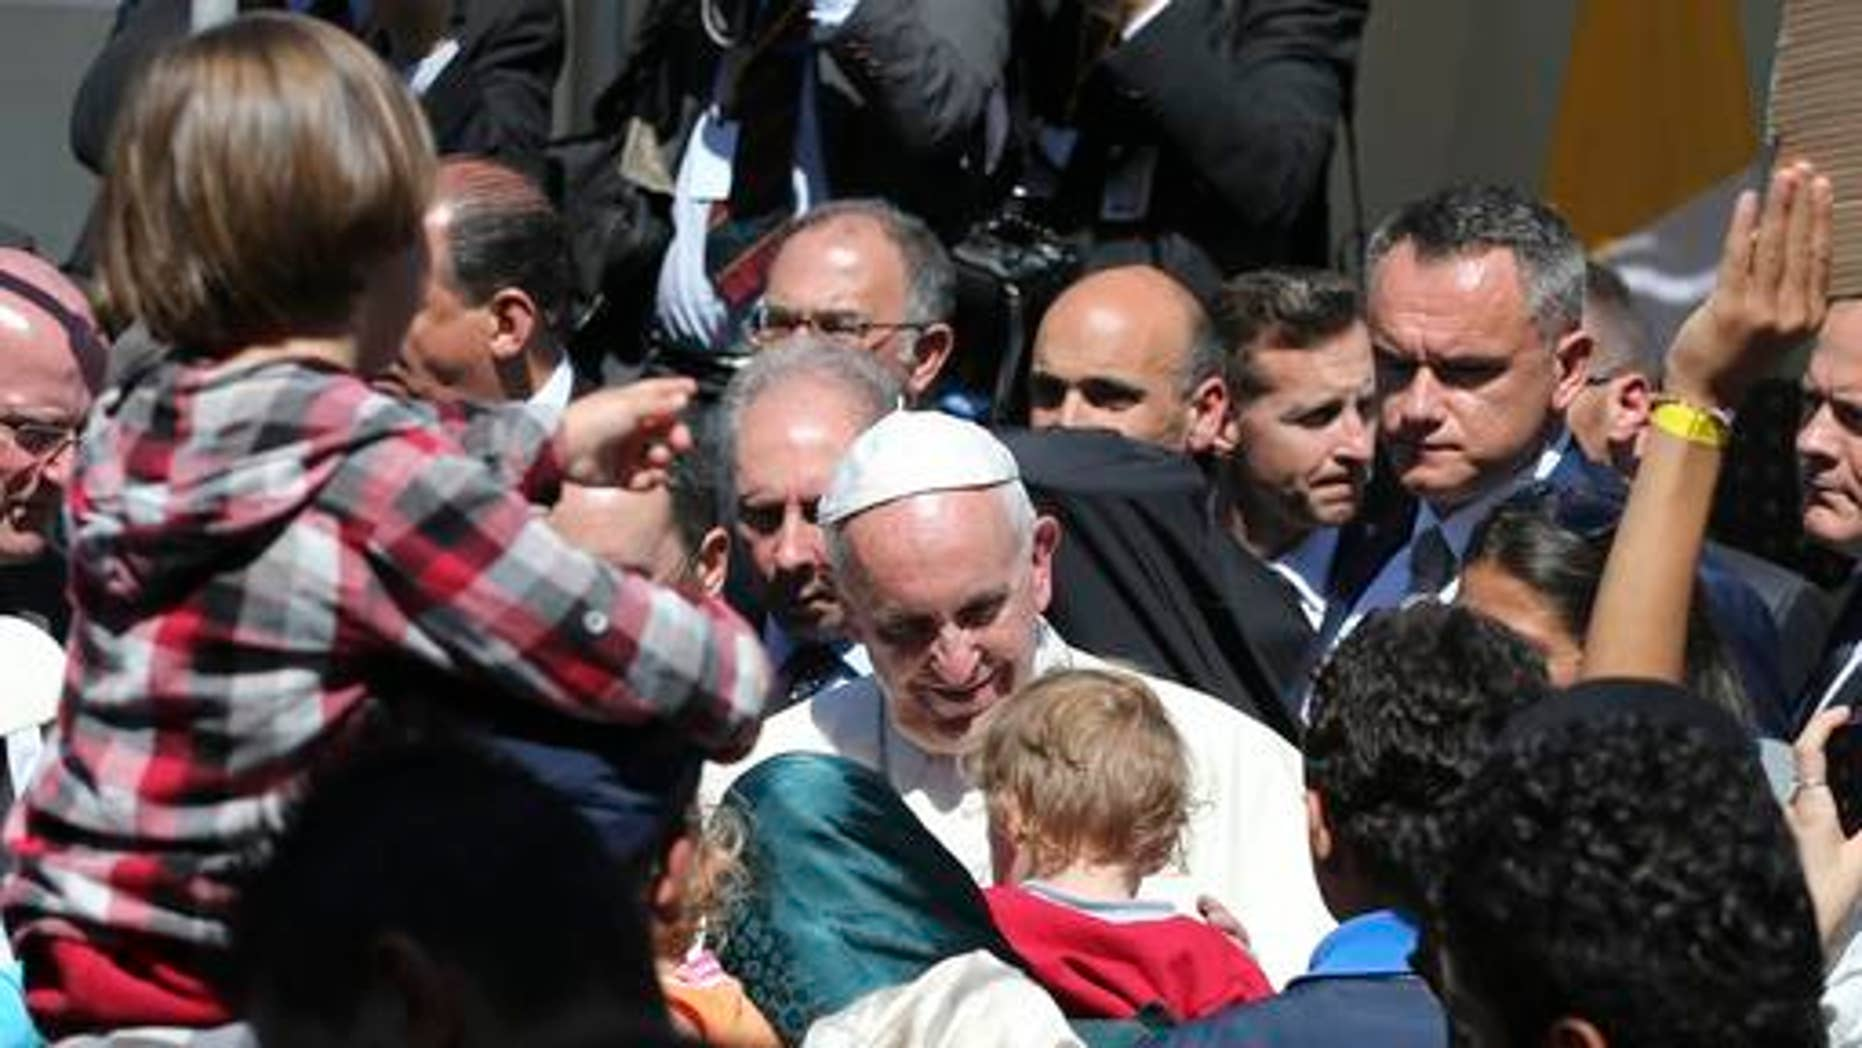 FILE - In this April 16, 2016 file photo, Pope Francis meets migrants at the Moria refugee camp on the Greek island of Lesbos. The pope, in his annual message for the World Day of Migrants and Refugees on Thursday, Oct. 13, 2016, denounced the forced repatriation of unaccompanied children migrants who flee wars and poverty, saying countries should try to meet their needs rather than return them to uncertain futures back home. (AP Photo/Petros Giannakouris, File)